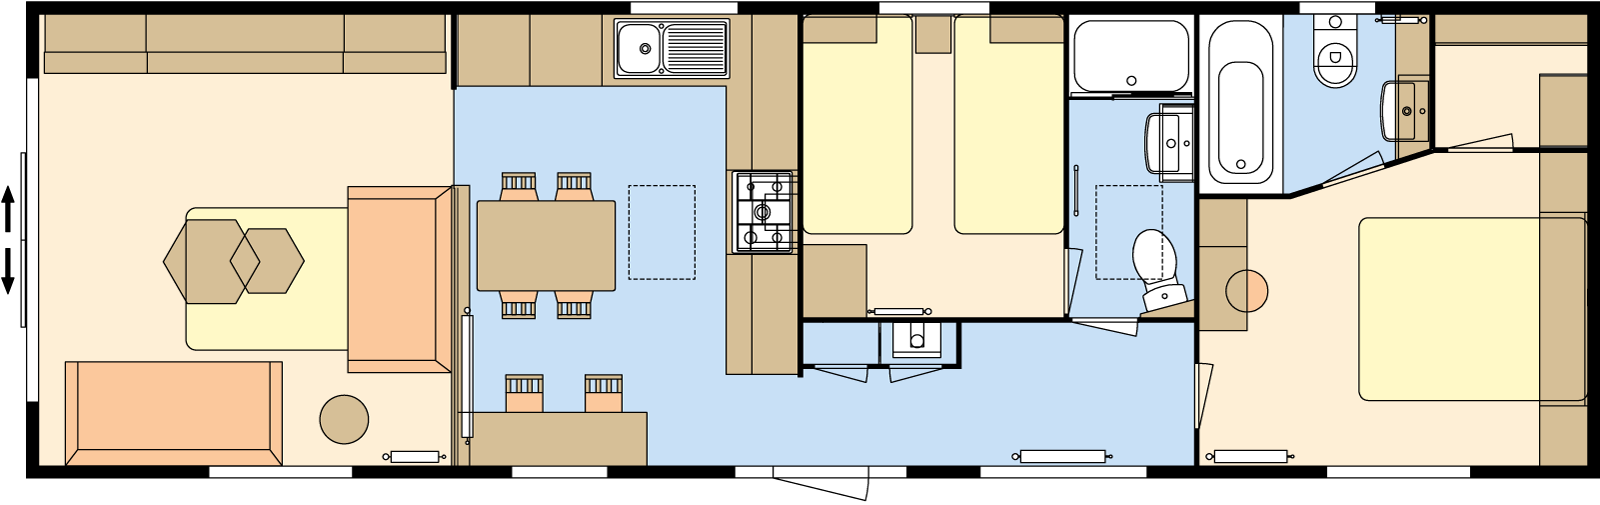 43 × 13 – 2 bedroom/6 berth